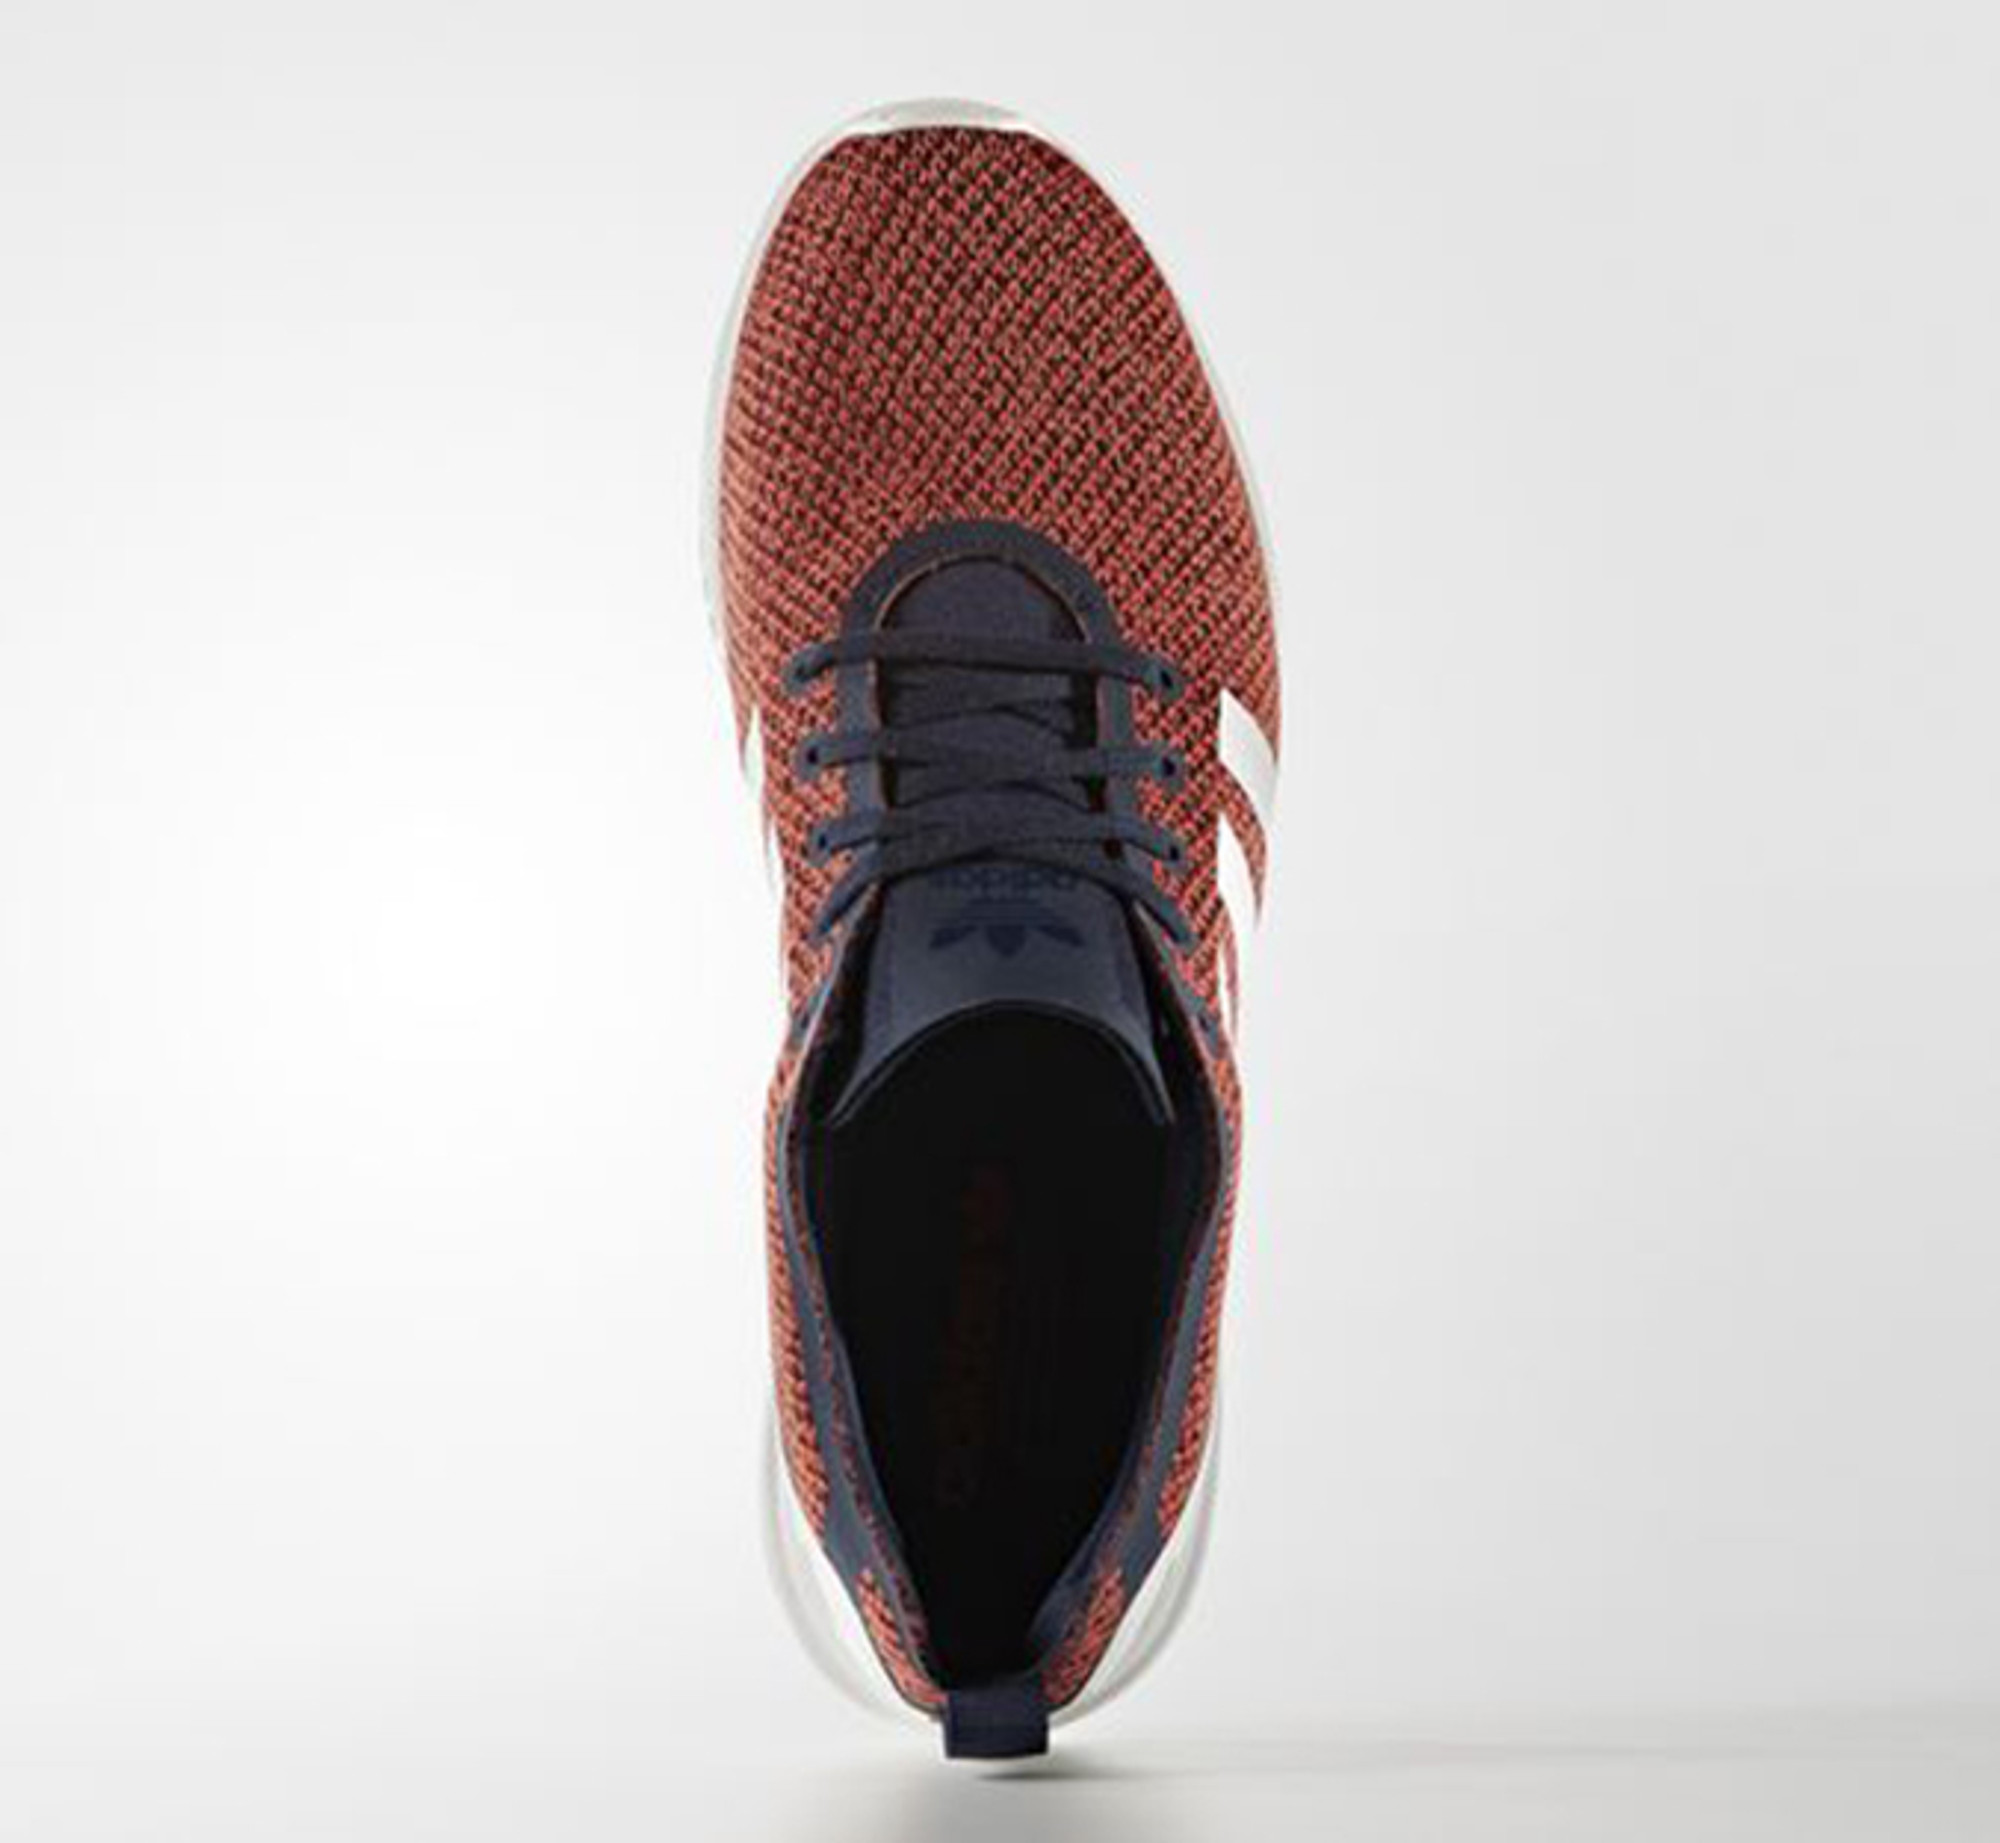 online store fcff8 77ed6 adidas ZX Flux ADV Smooth for Women - Sunlight Station